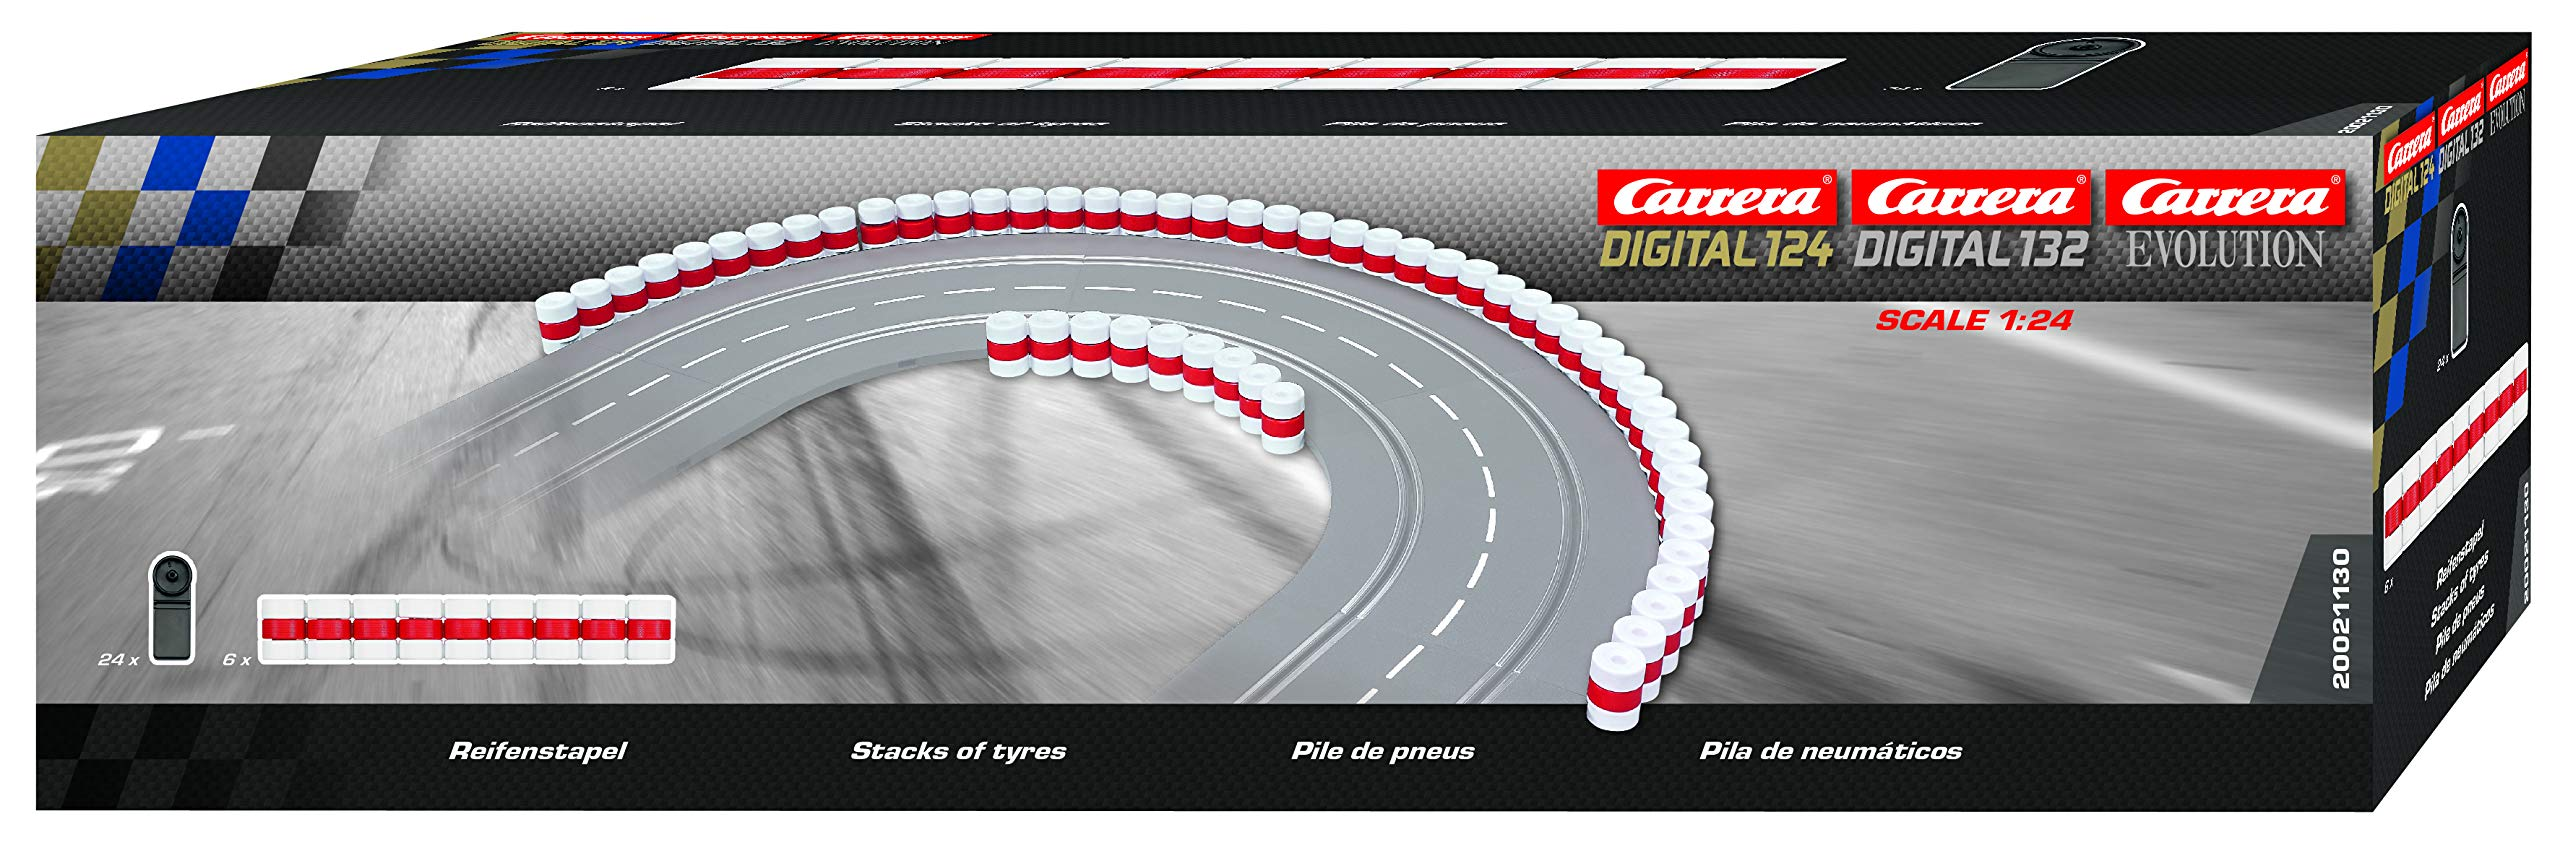 Carrera 20021130 21130 Tire Stacks Guardrail Wall for Digital 124/132/Evolution Slot Car Tracks Realistic Scenery Add On Parts Accessory, White Red by Carrera (Image #1)